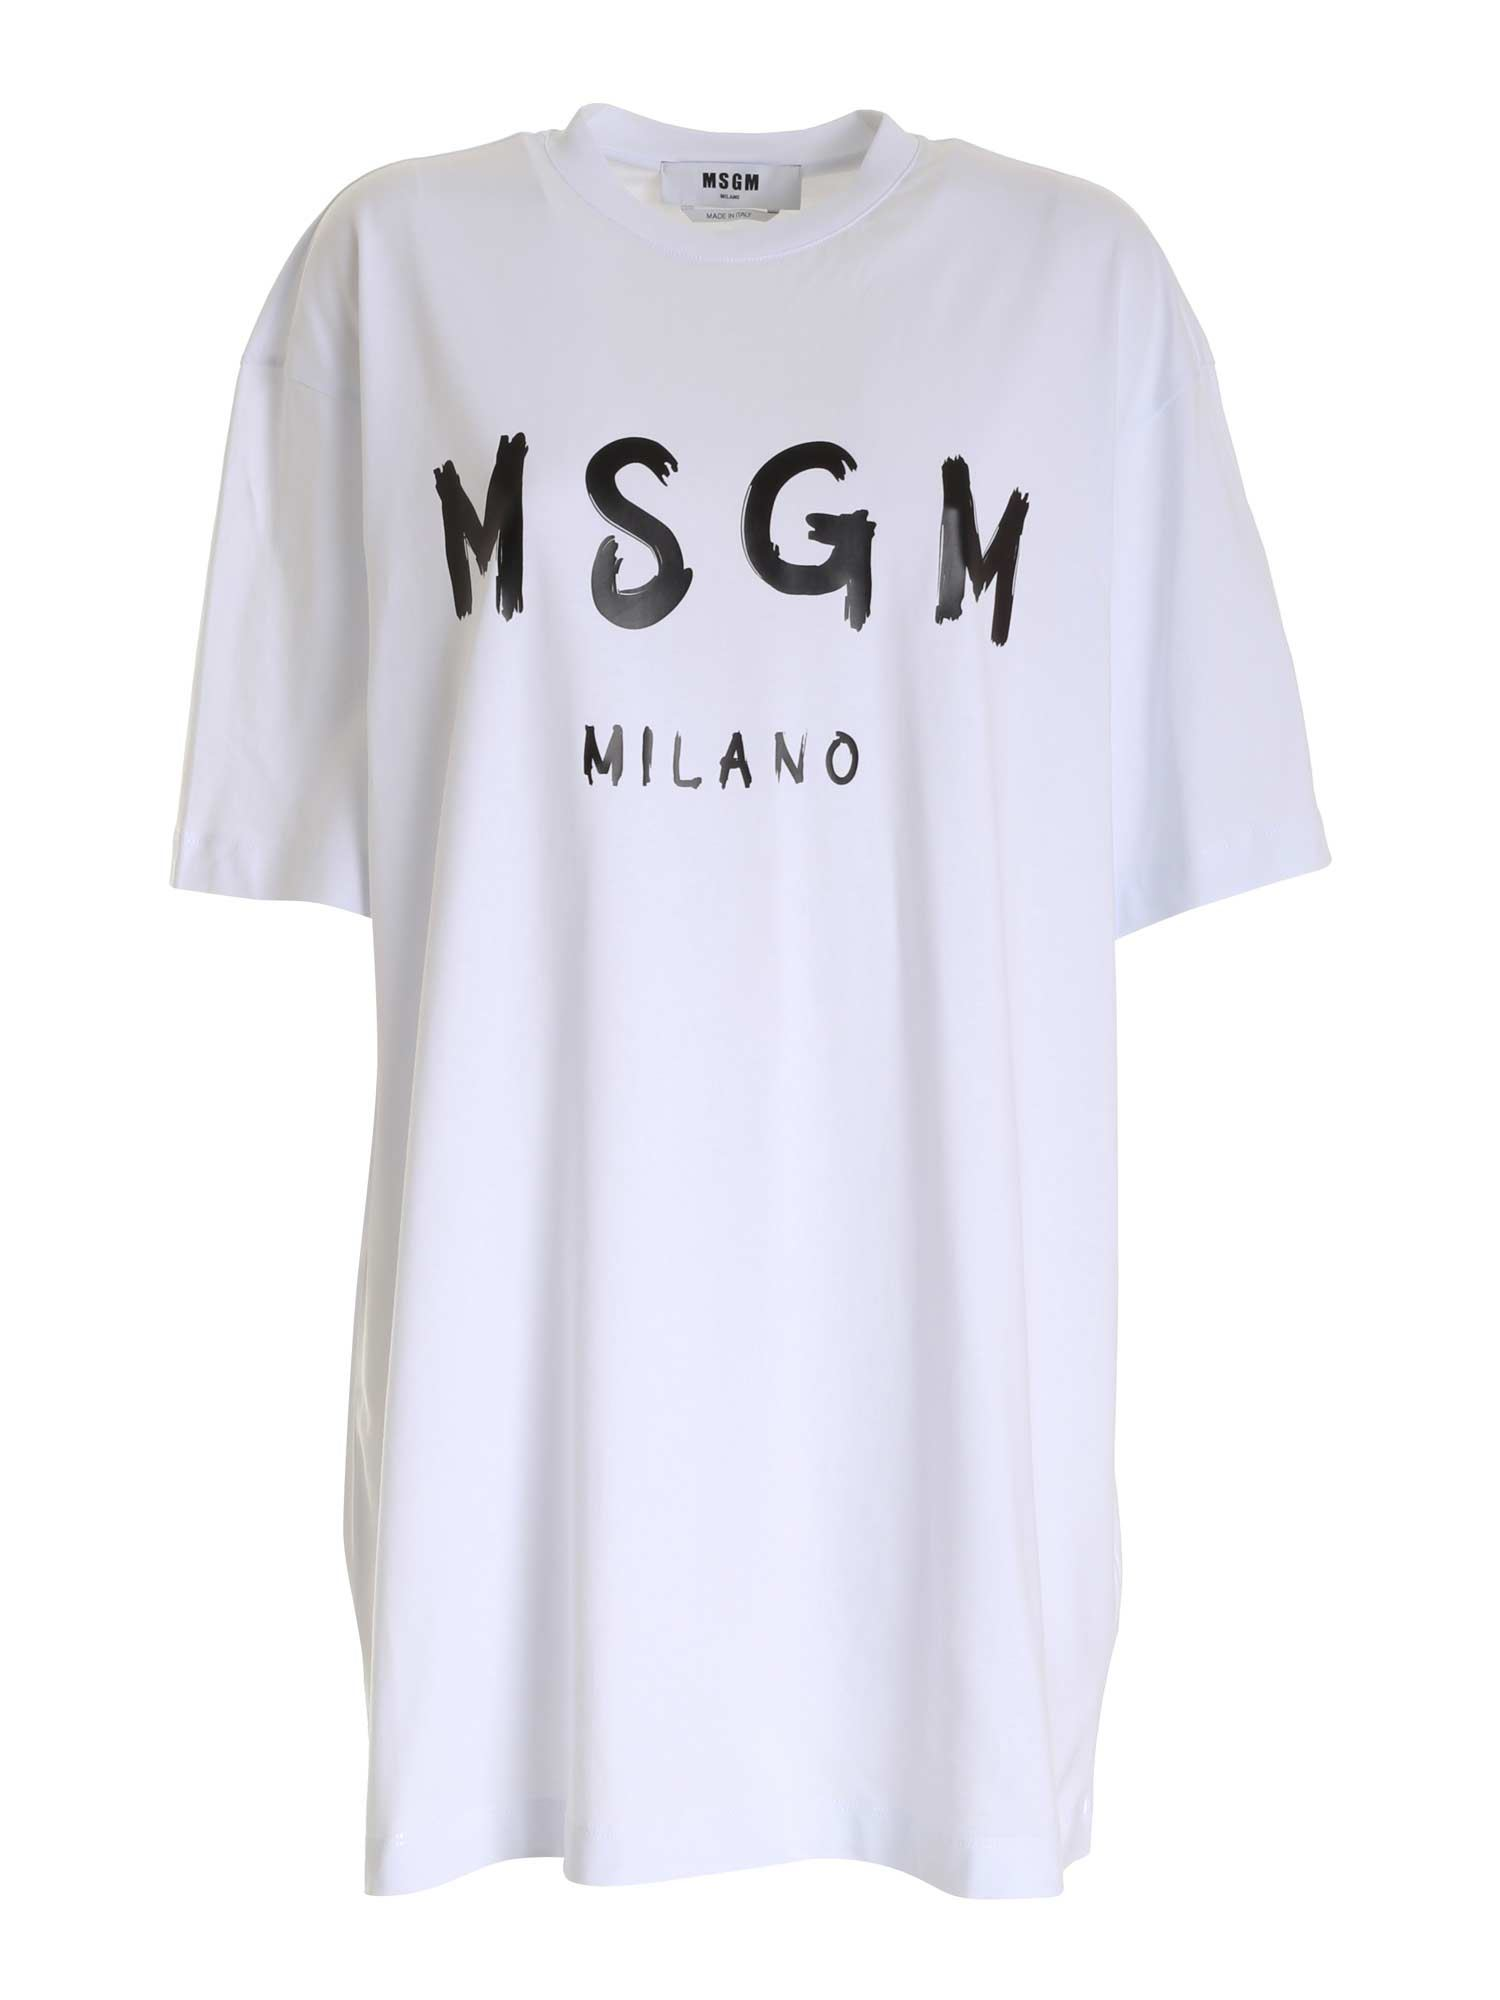 Msgm LOGO DRESS IN WHITE